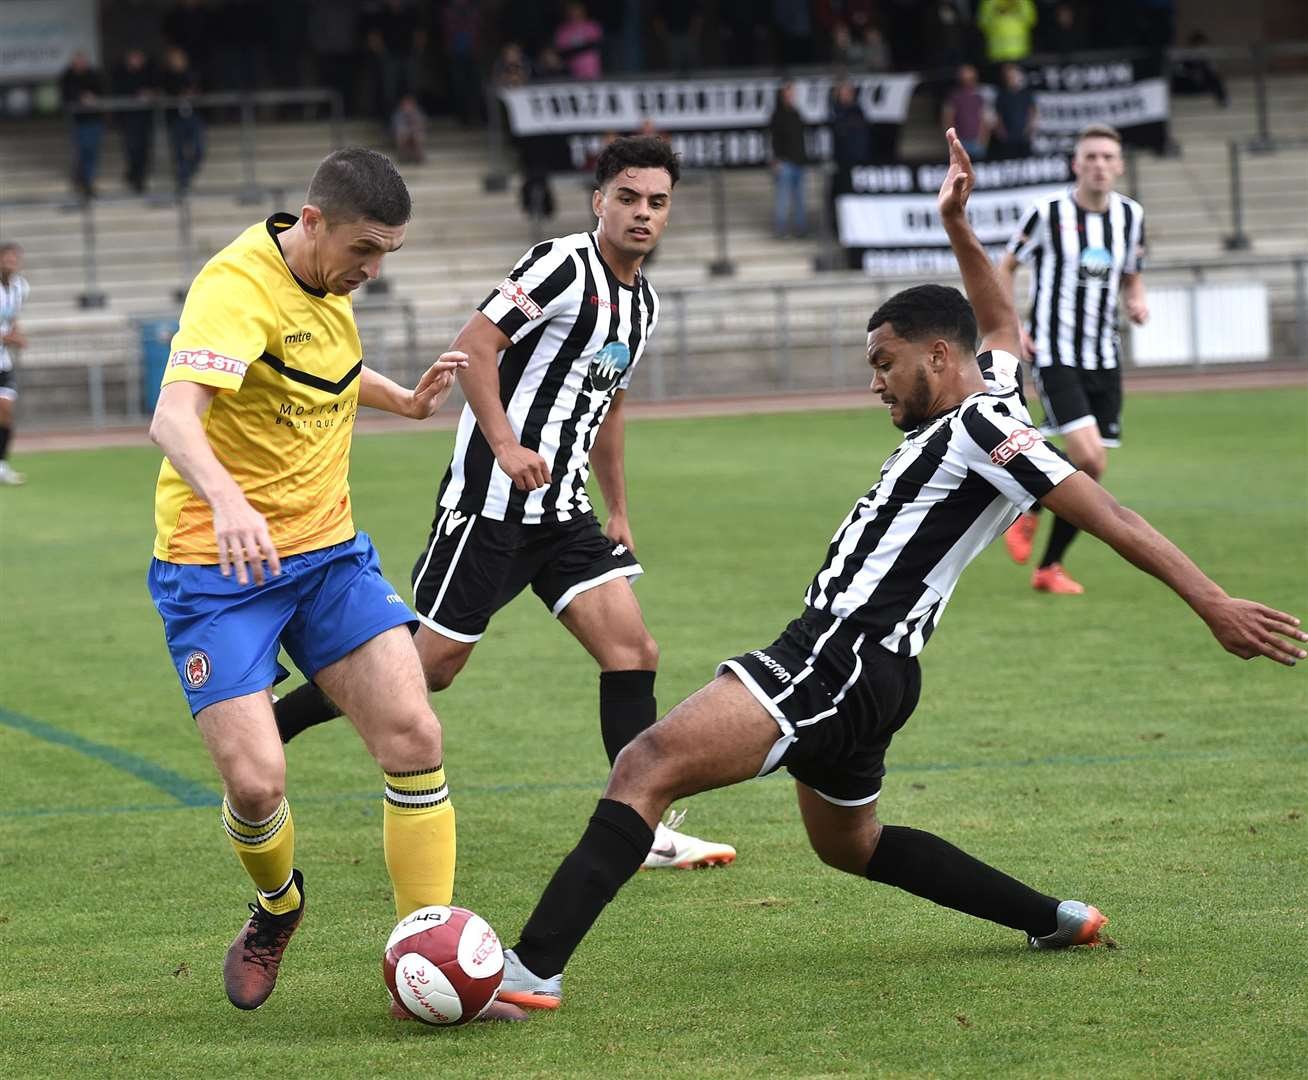 Supported by Cenk Acar, Grantham Town's Ross Barrows tackles a Hyde United player on Saturday. Photo: Toby Roberts (4291626)